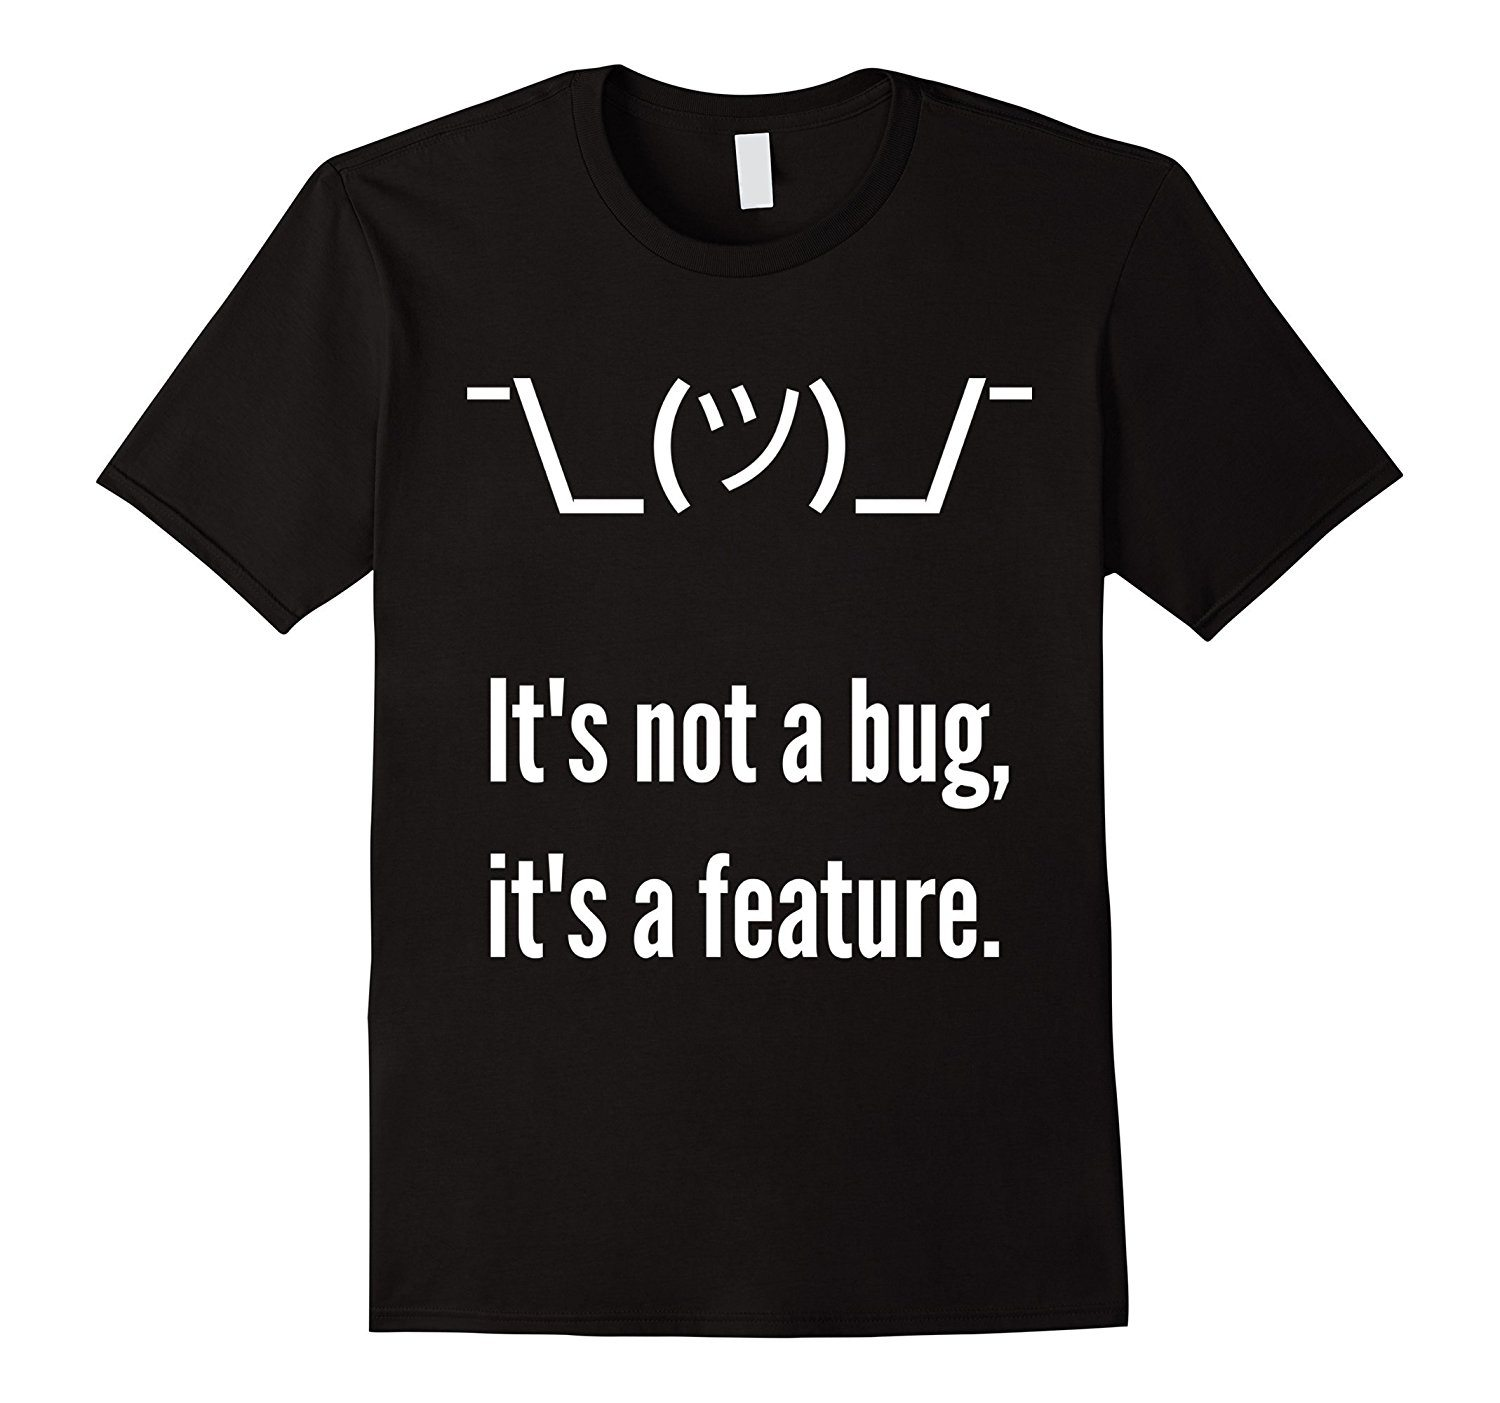 Shrug It's not a bug, it's a feature. Developer Excuse Shirt